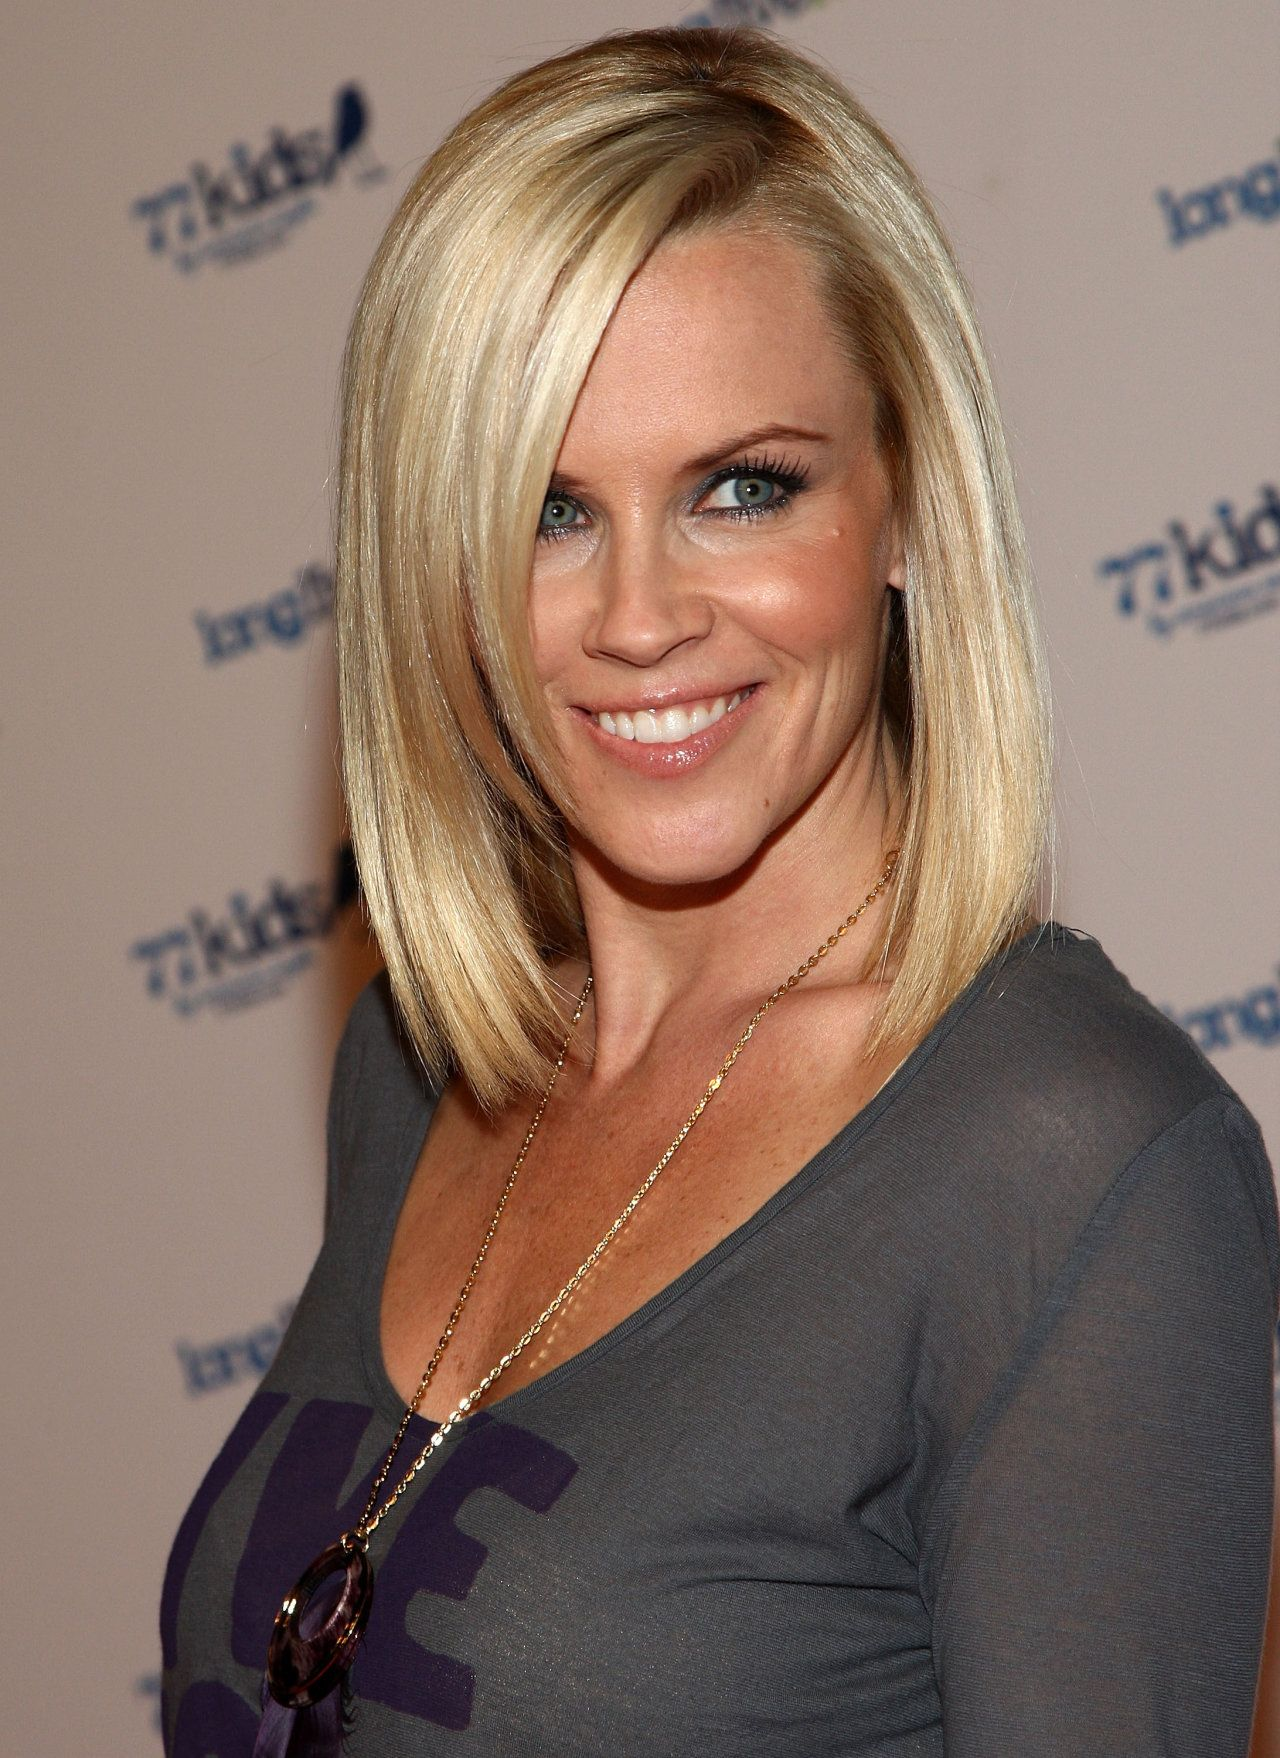 Elizabeth Hasselbeck Hairstyles Jenny Mccarthy To Join The View